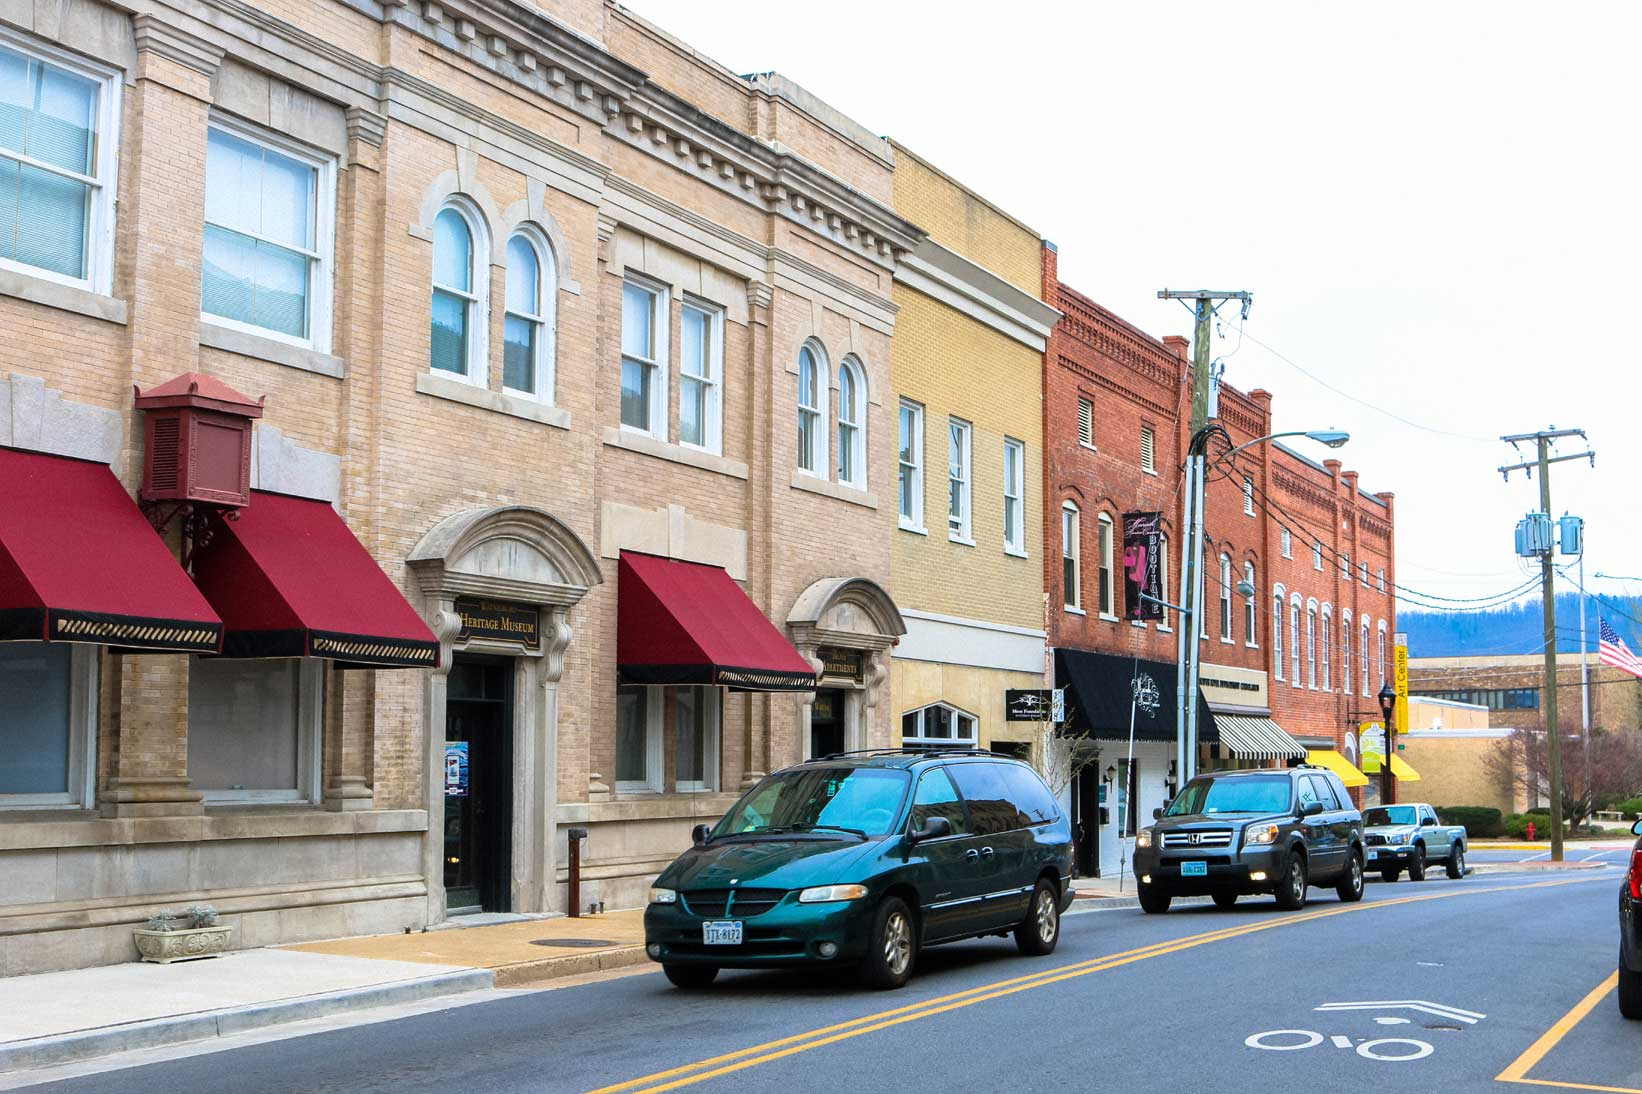 Downtown businesses in Waynesboro, VA